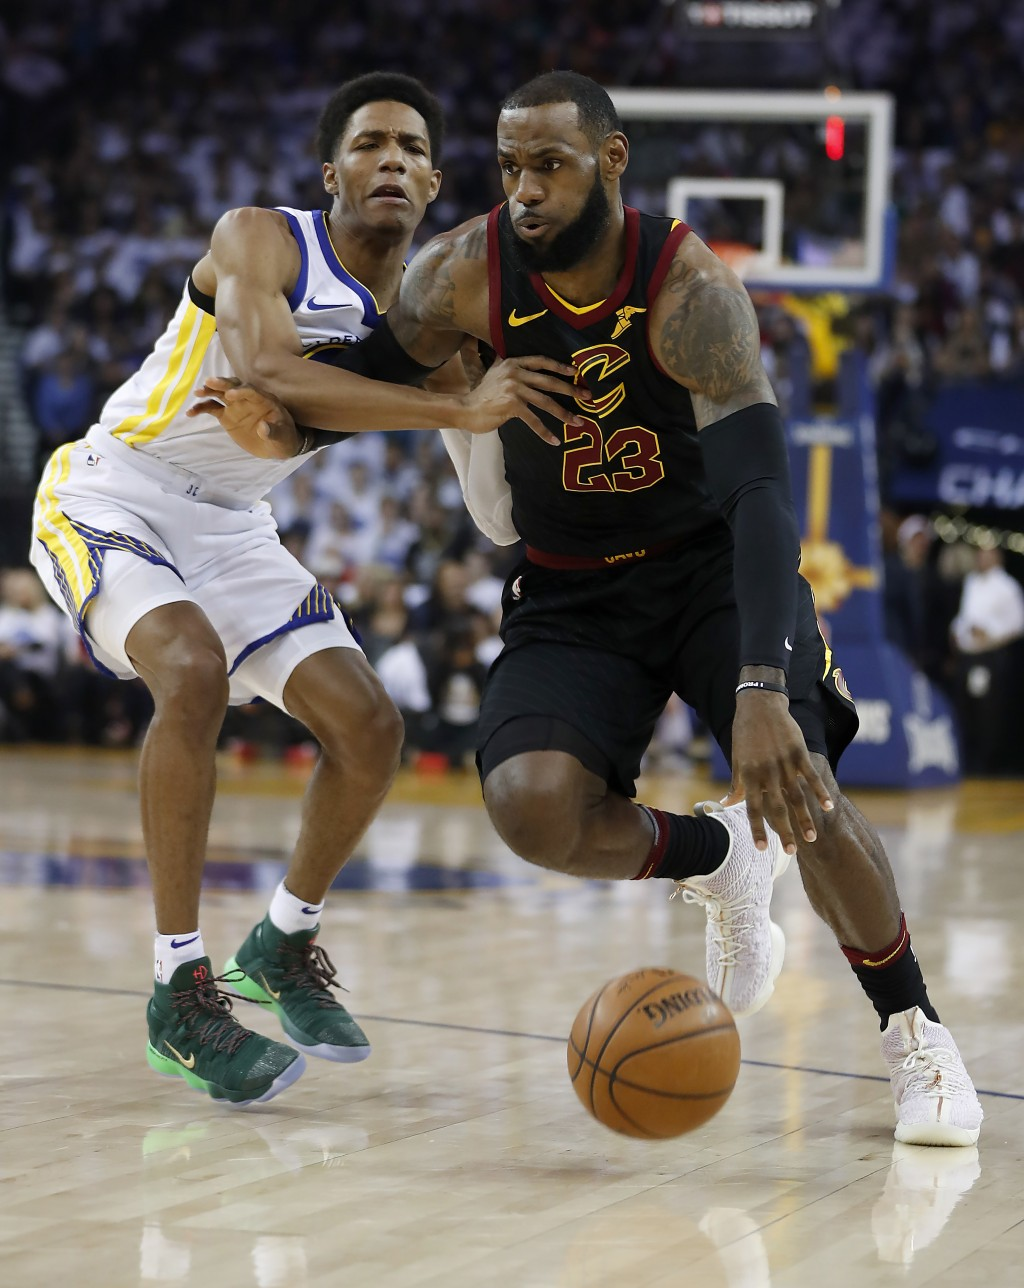 Cleveland Cavaliers forward LeBron James (23) drives to the basket past Golden State Warriors guard Patrick McCaw during the first half of an NBA bask...